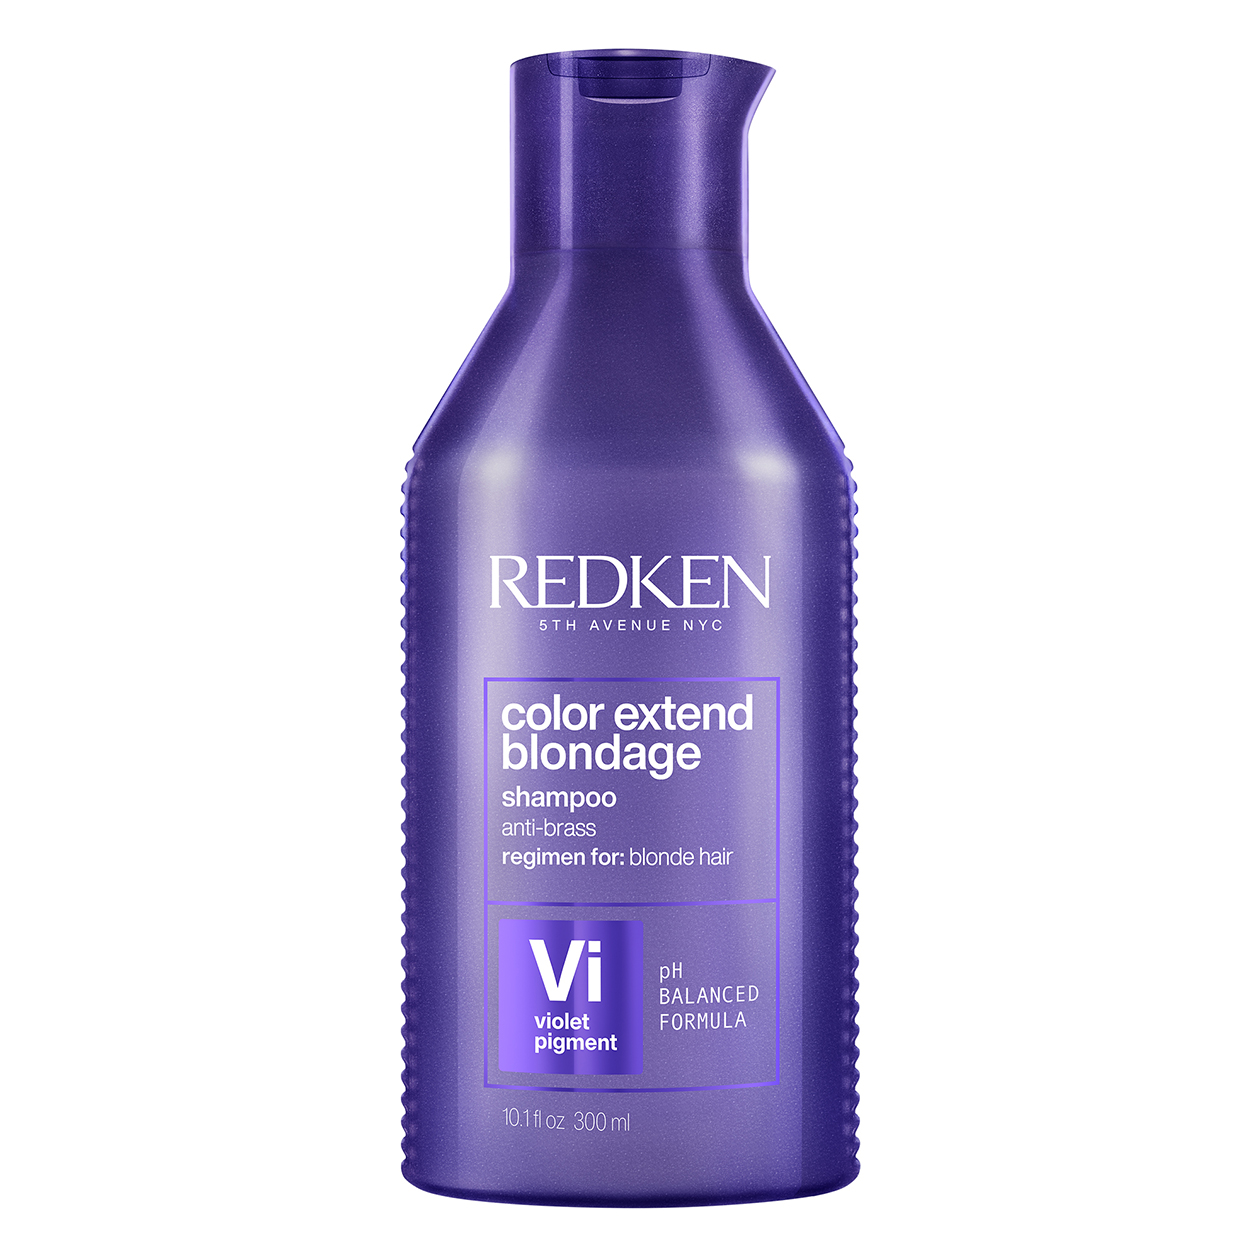 Redken Color Extend Blondage Shampoo Jpg